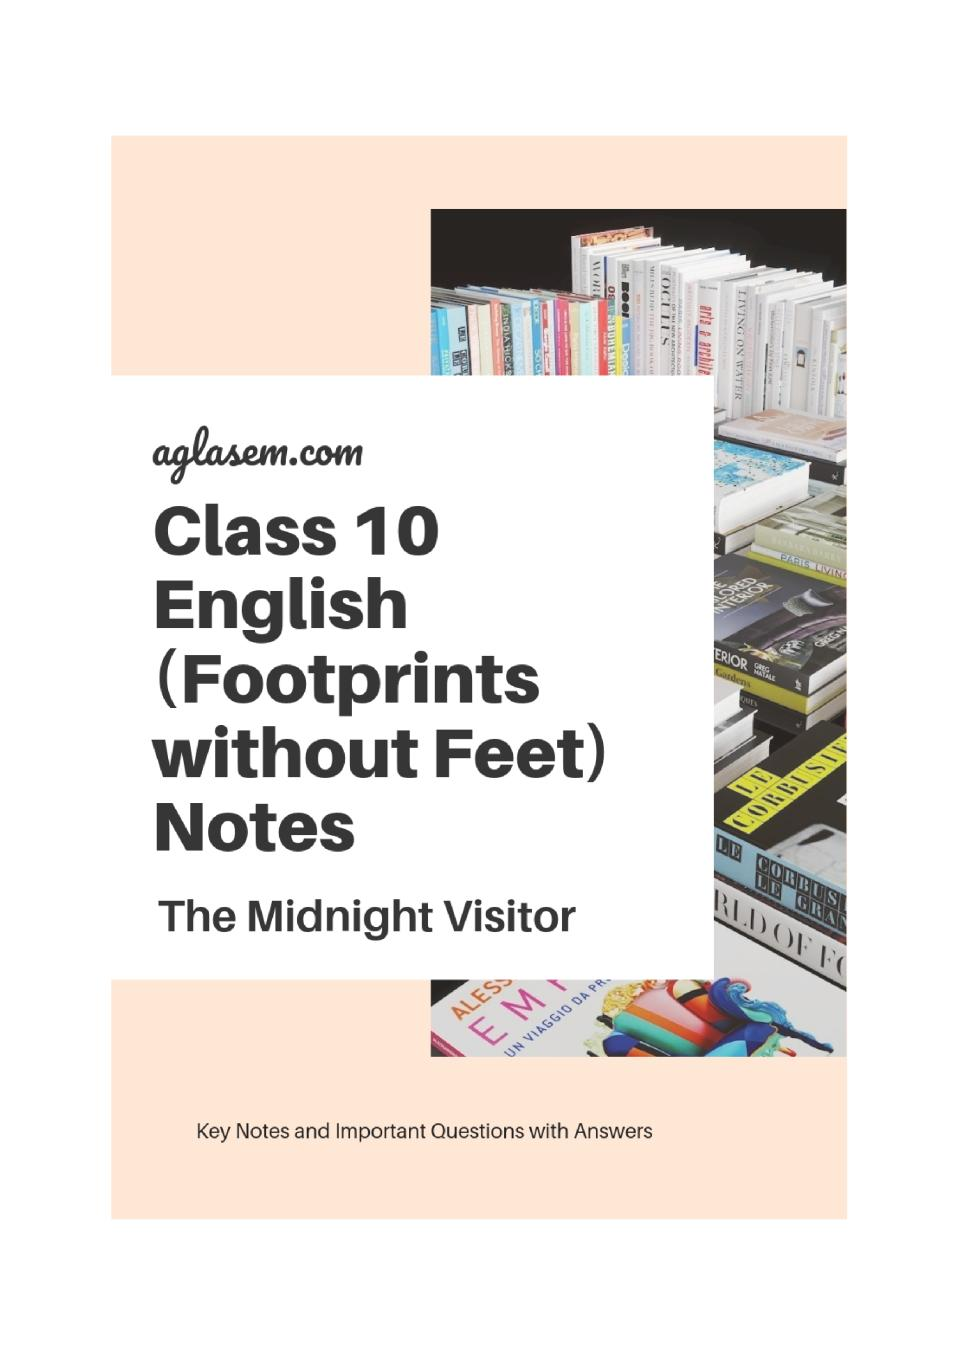 Class 10 English Footprints without Feet Notes For The Midnight Visitor - Page 1